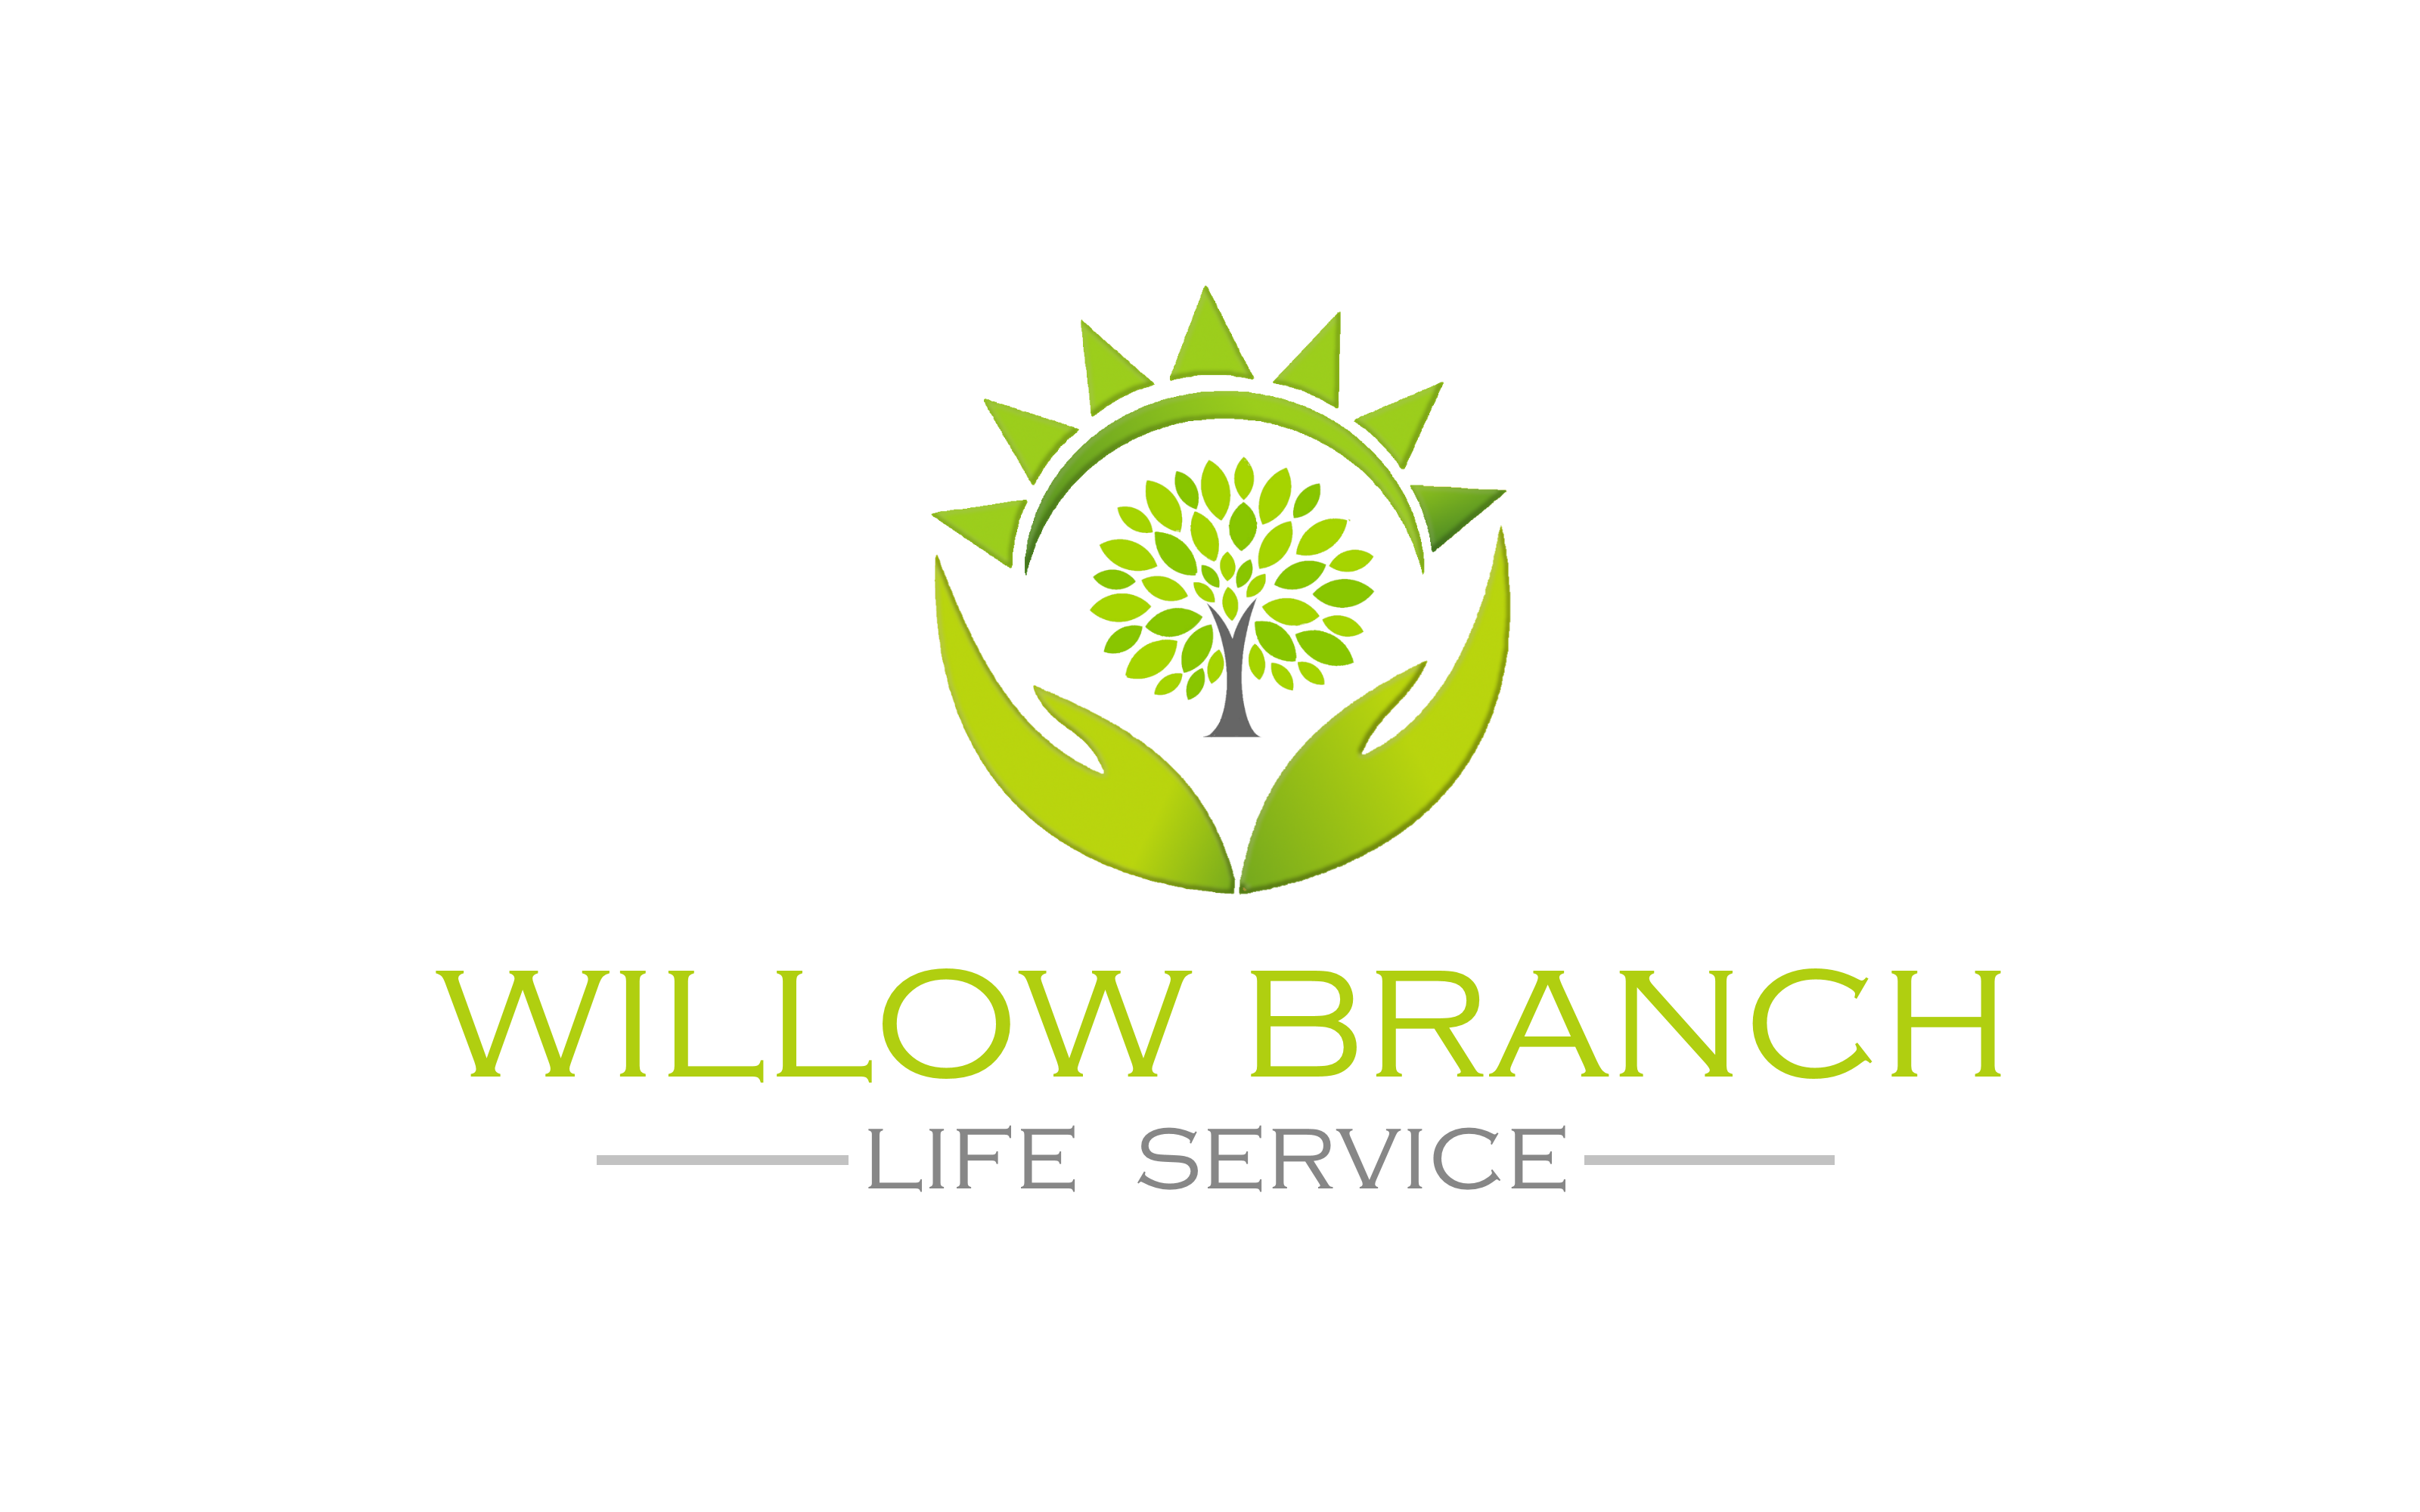 Logo Design by Roberto Bassi - Entry No. 282 in the Logo Design Contest Artistic Logo Design for Willow Branch Life Service.